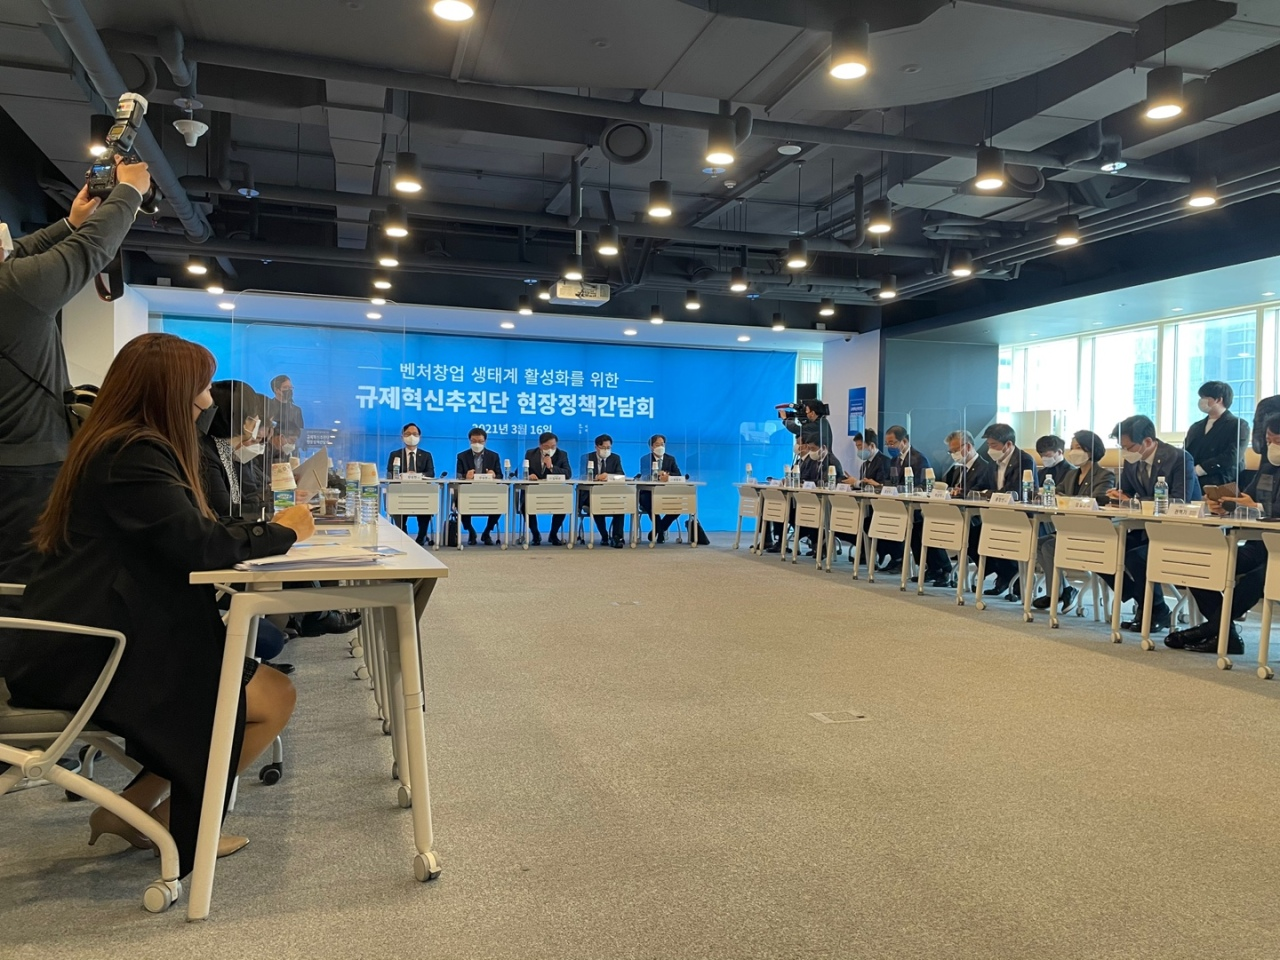 A group of government officials, lawmakers and industry experts gathered at Seoul Creative Economy Innovation Center on Tuesday to discuss measures including multiple voting rights to promote the country's startup ecosystem. (By Park Ga-young/The Korea Herald)